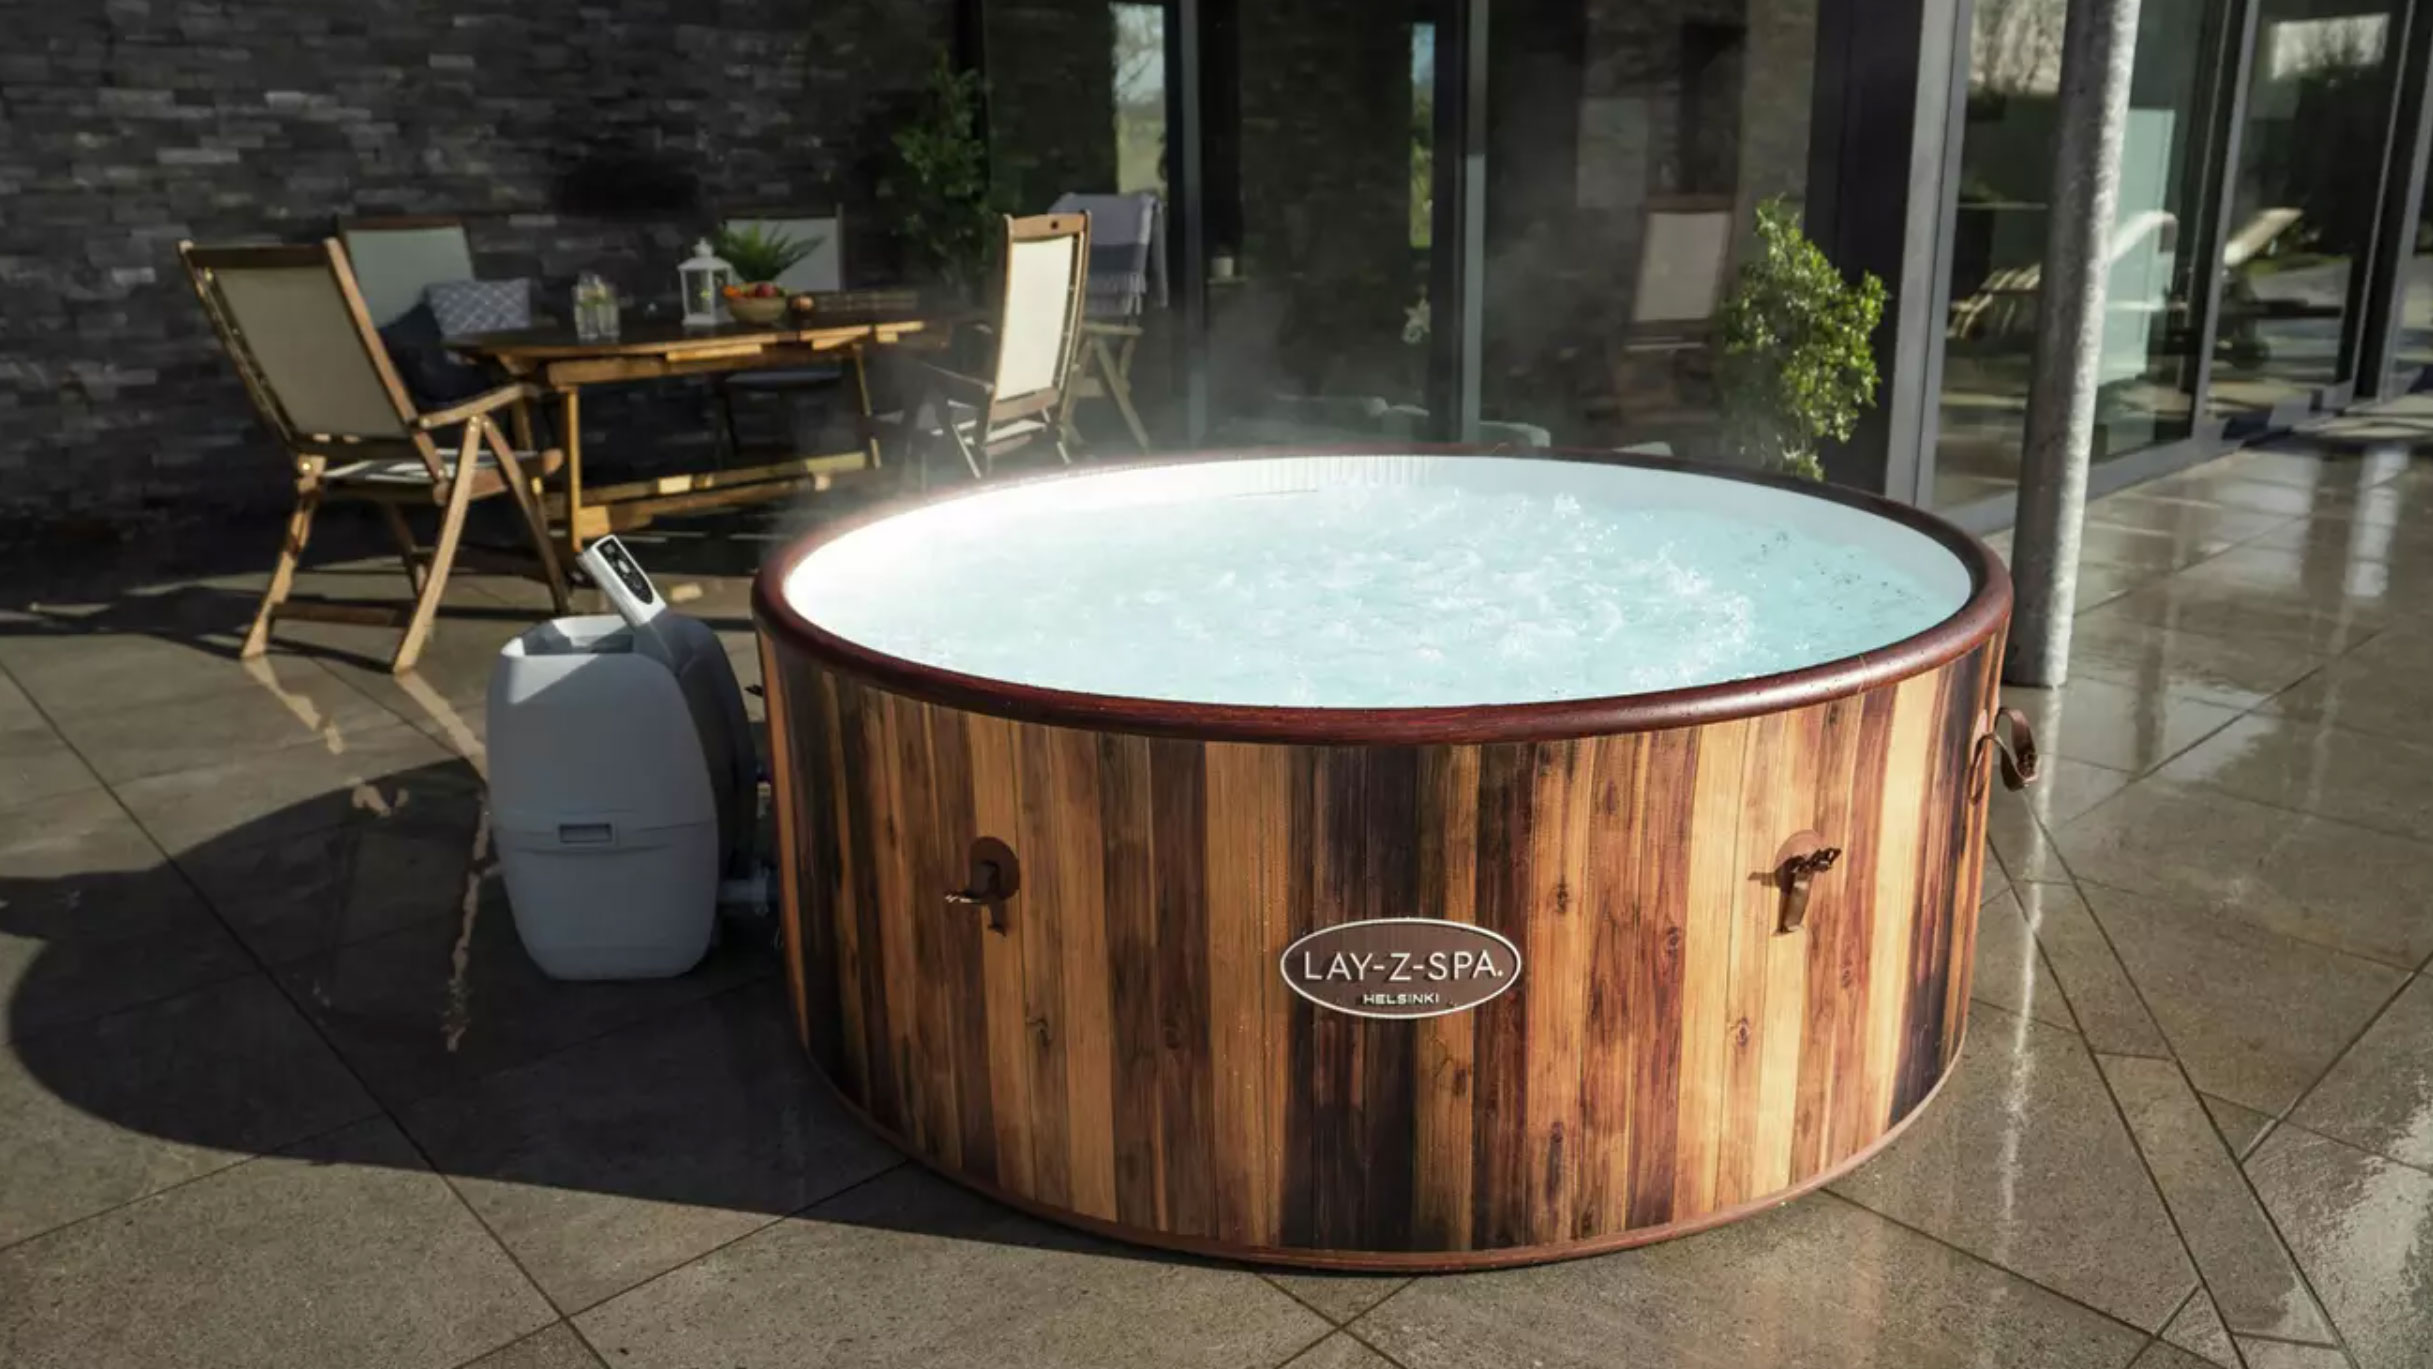 Best Hot Tub Deals Affordable Hot Tubs For Ss21 Garden Fun Real Homes